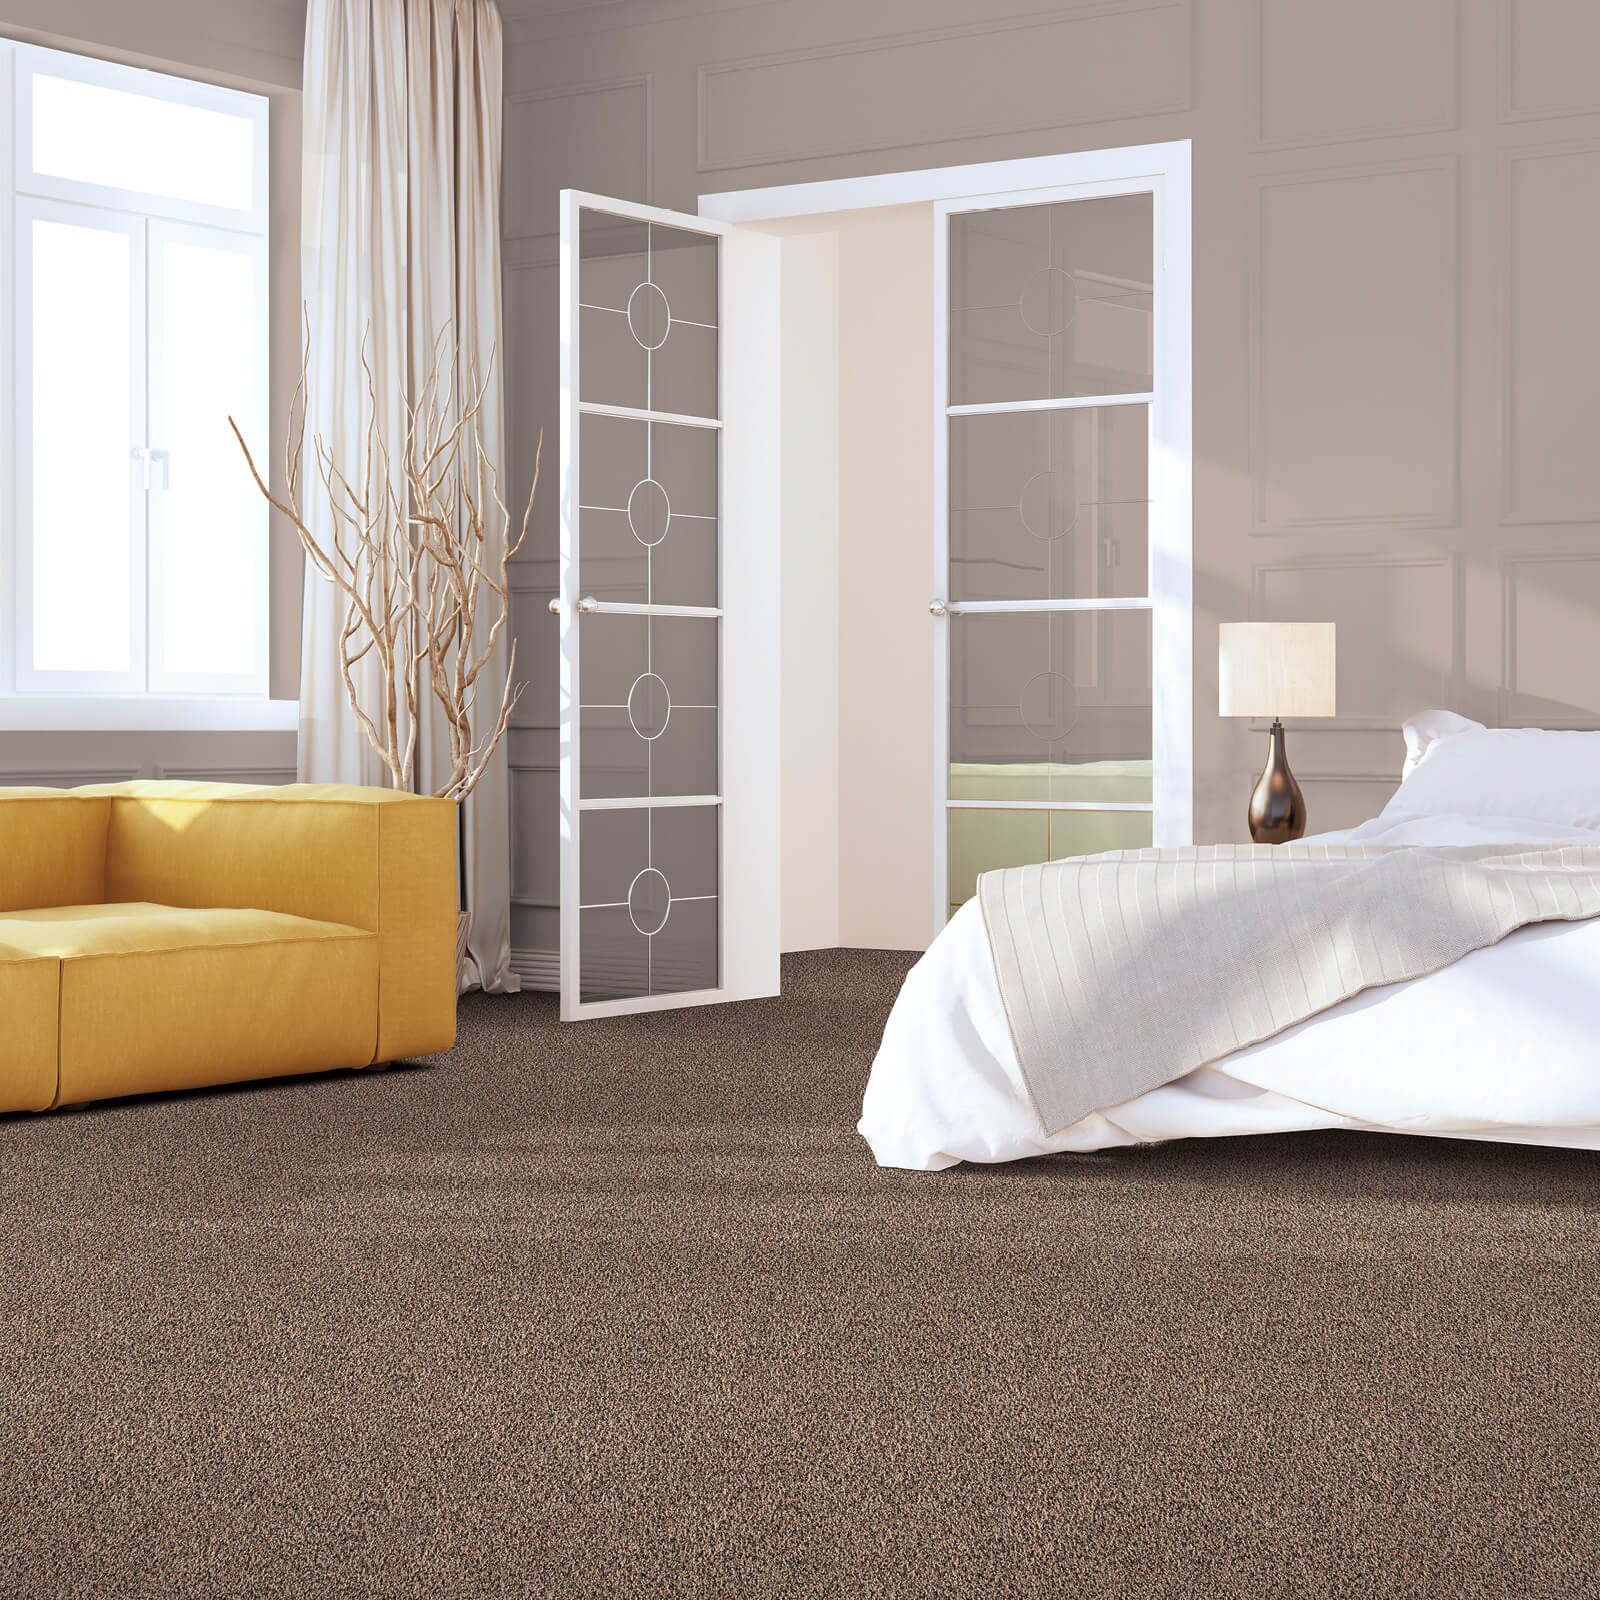 Impressive selection of Carpet | All Floors Design Centre